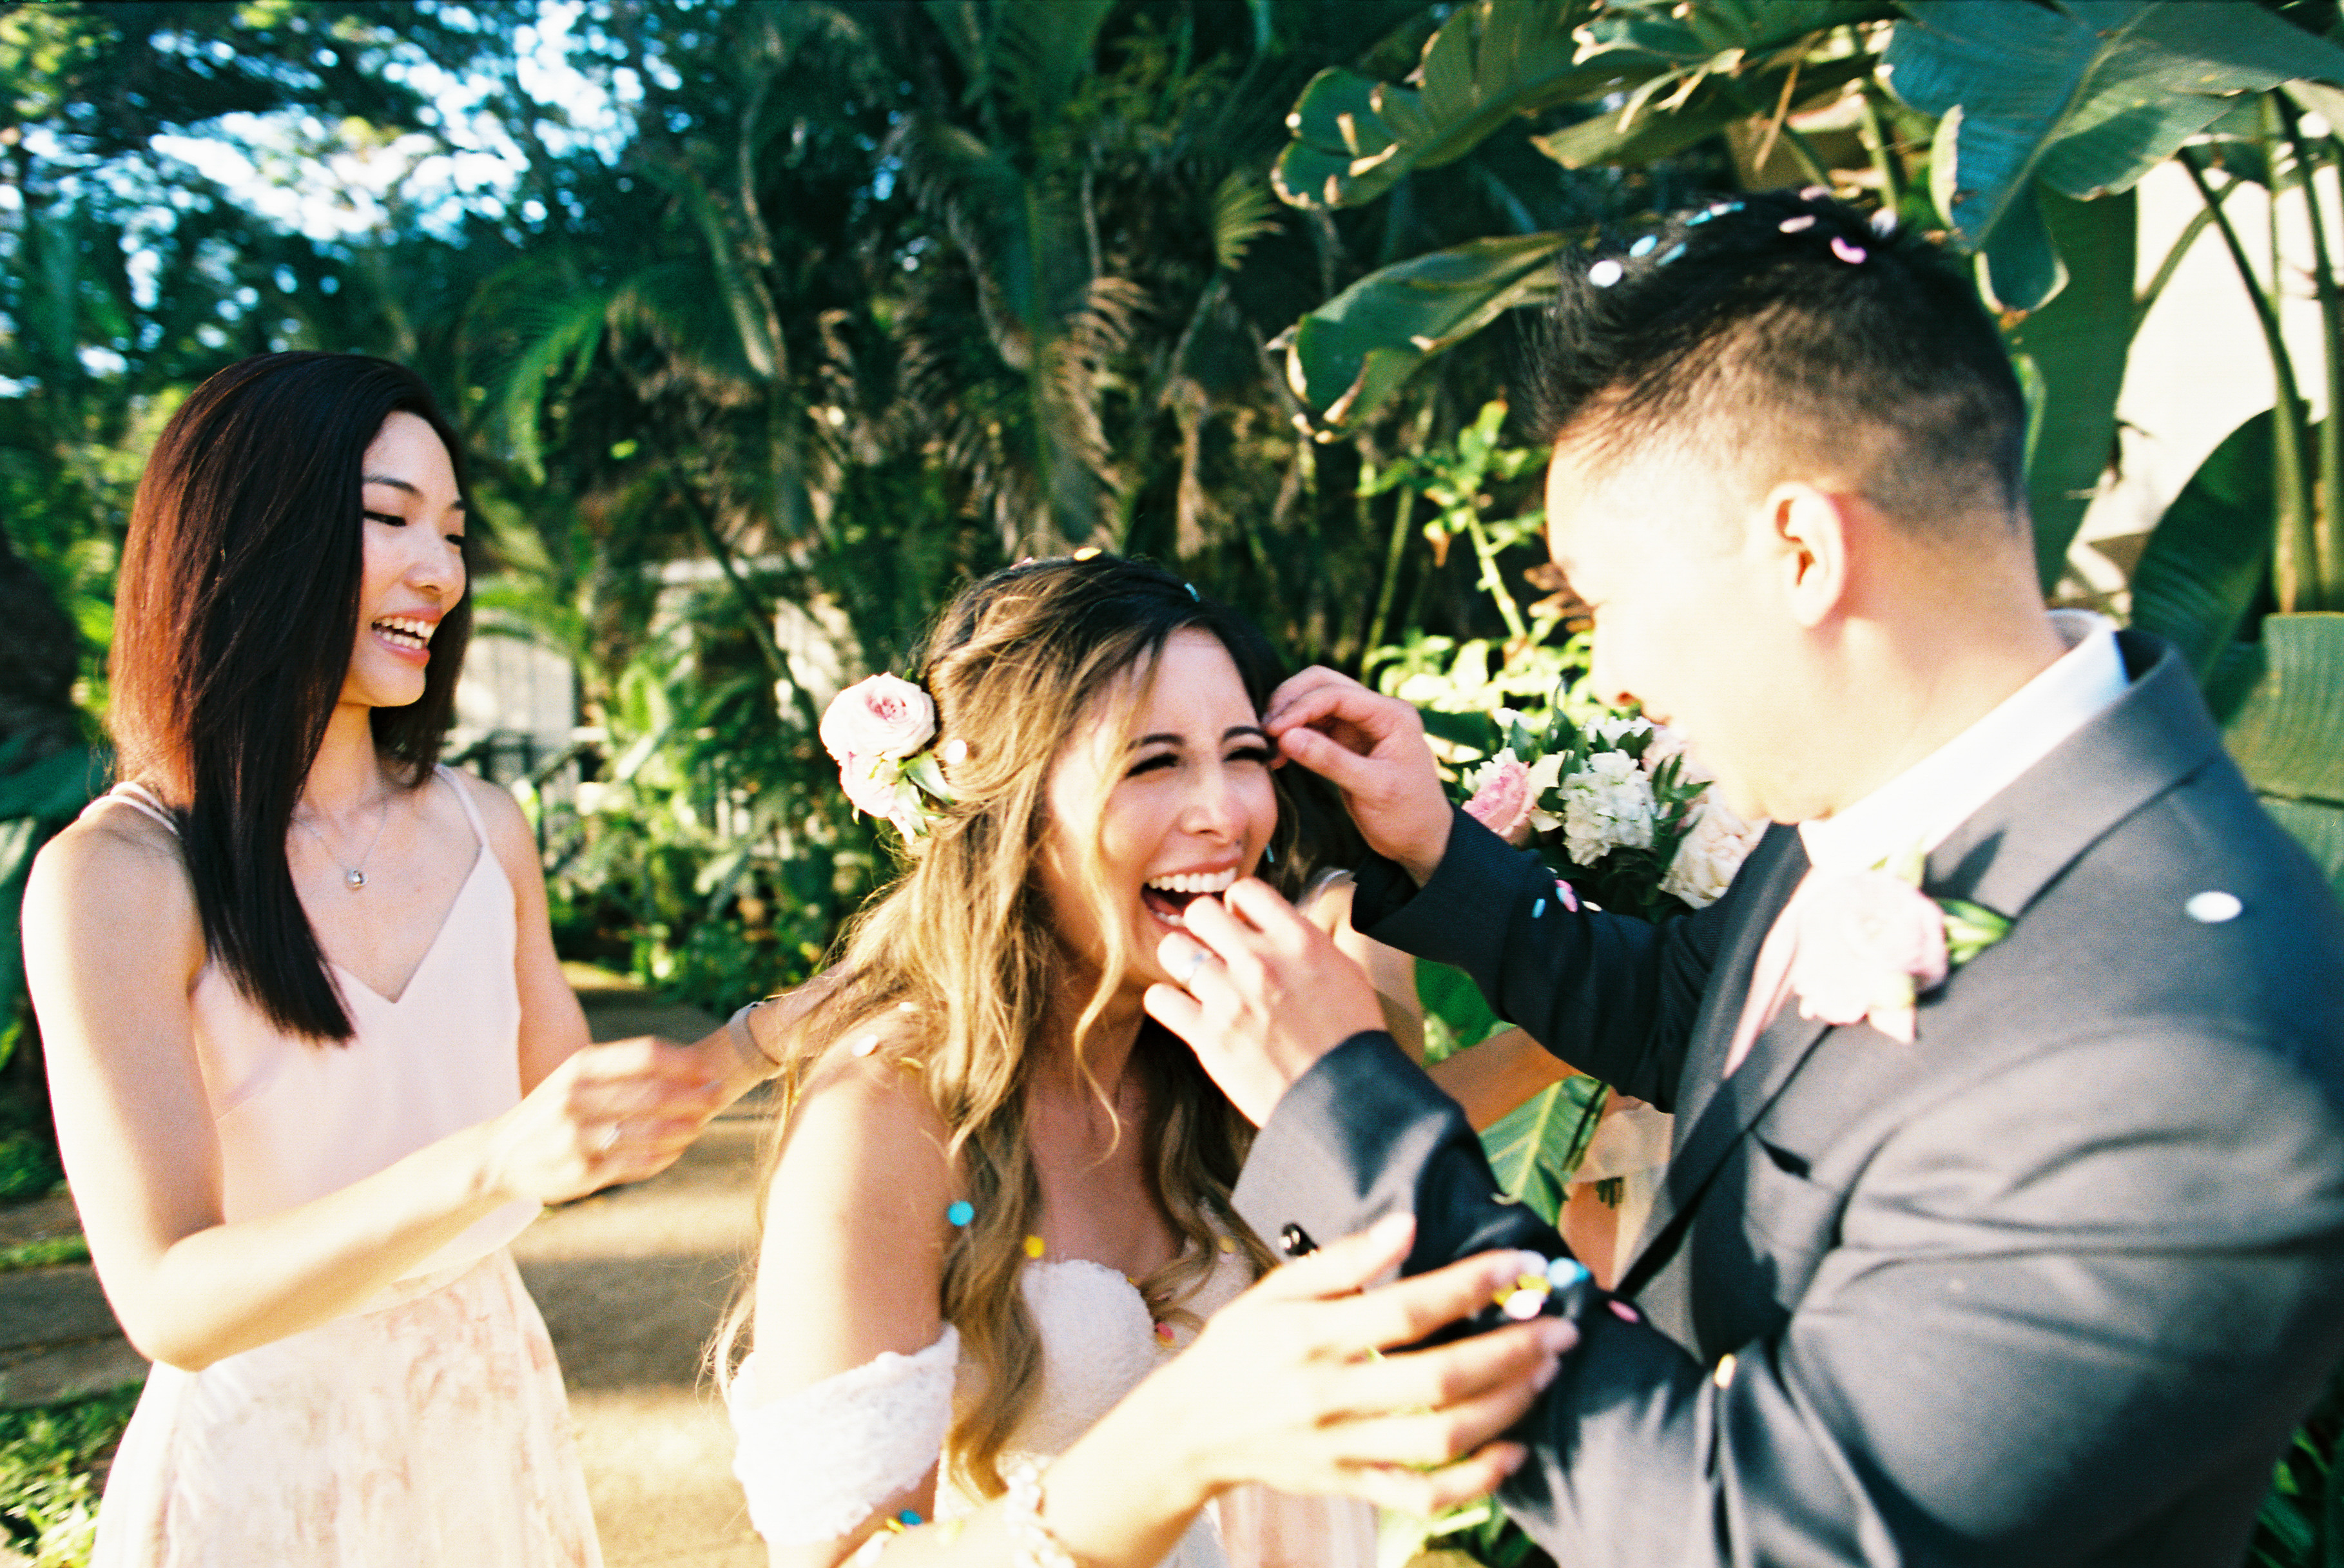 Maui Wedding venue Olowalu Plantation House | Maui Wedding Planner | Maui's Angels